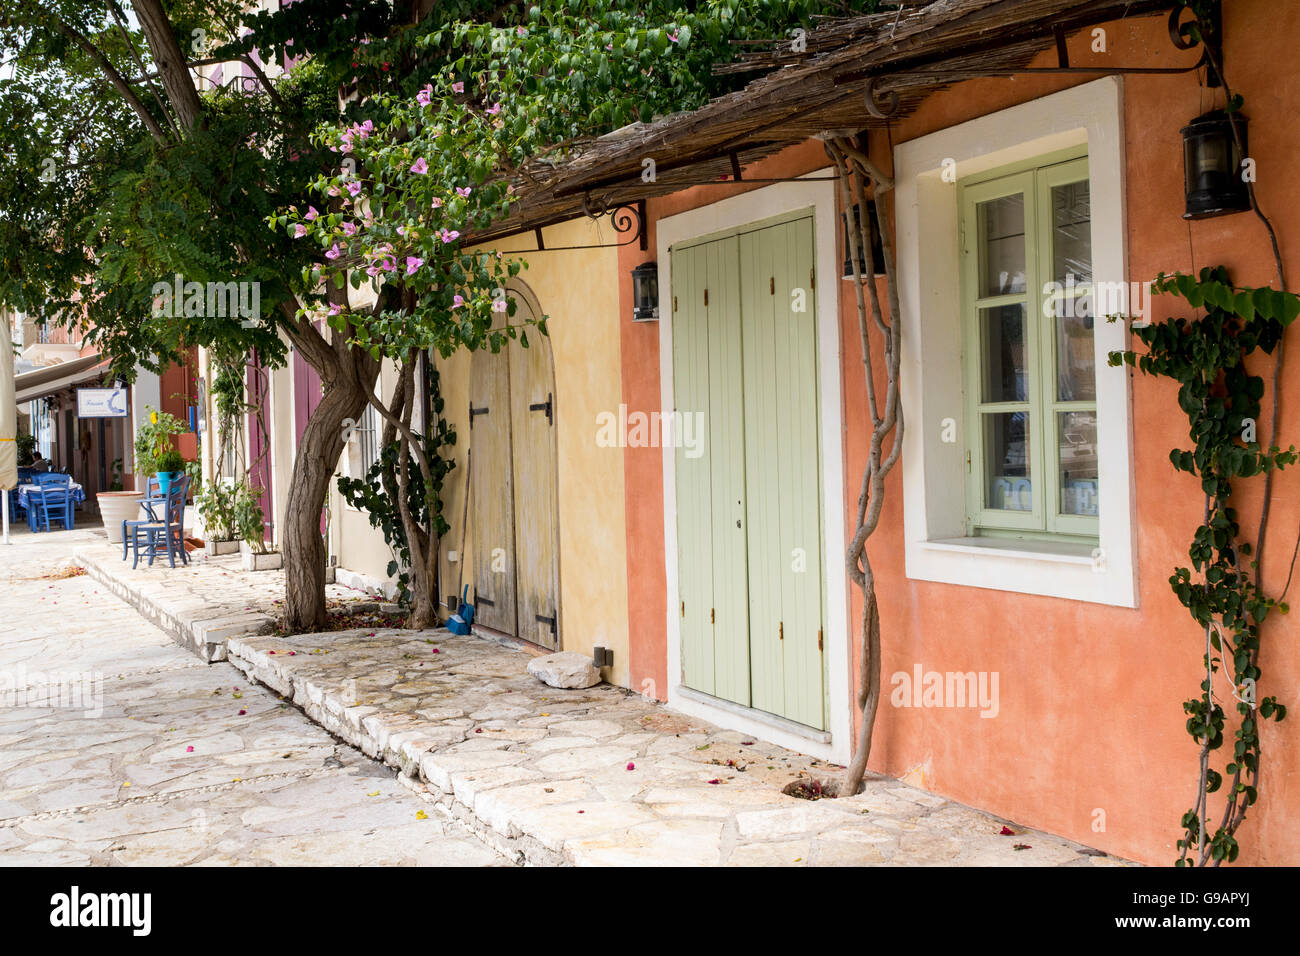 Shady Street View, Old Traditional Buildings and Terraced Paving with Flowers and Plants, Fiskardo, Kefalonia, Greece - Stock Image